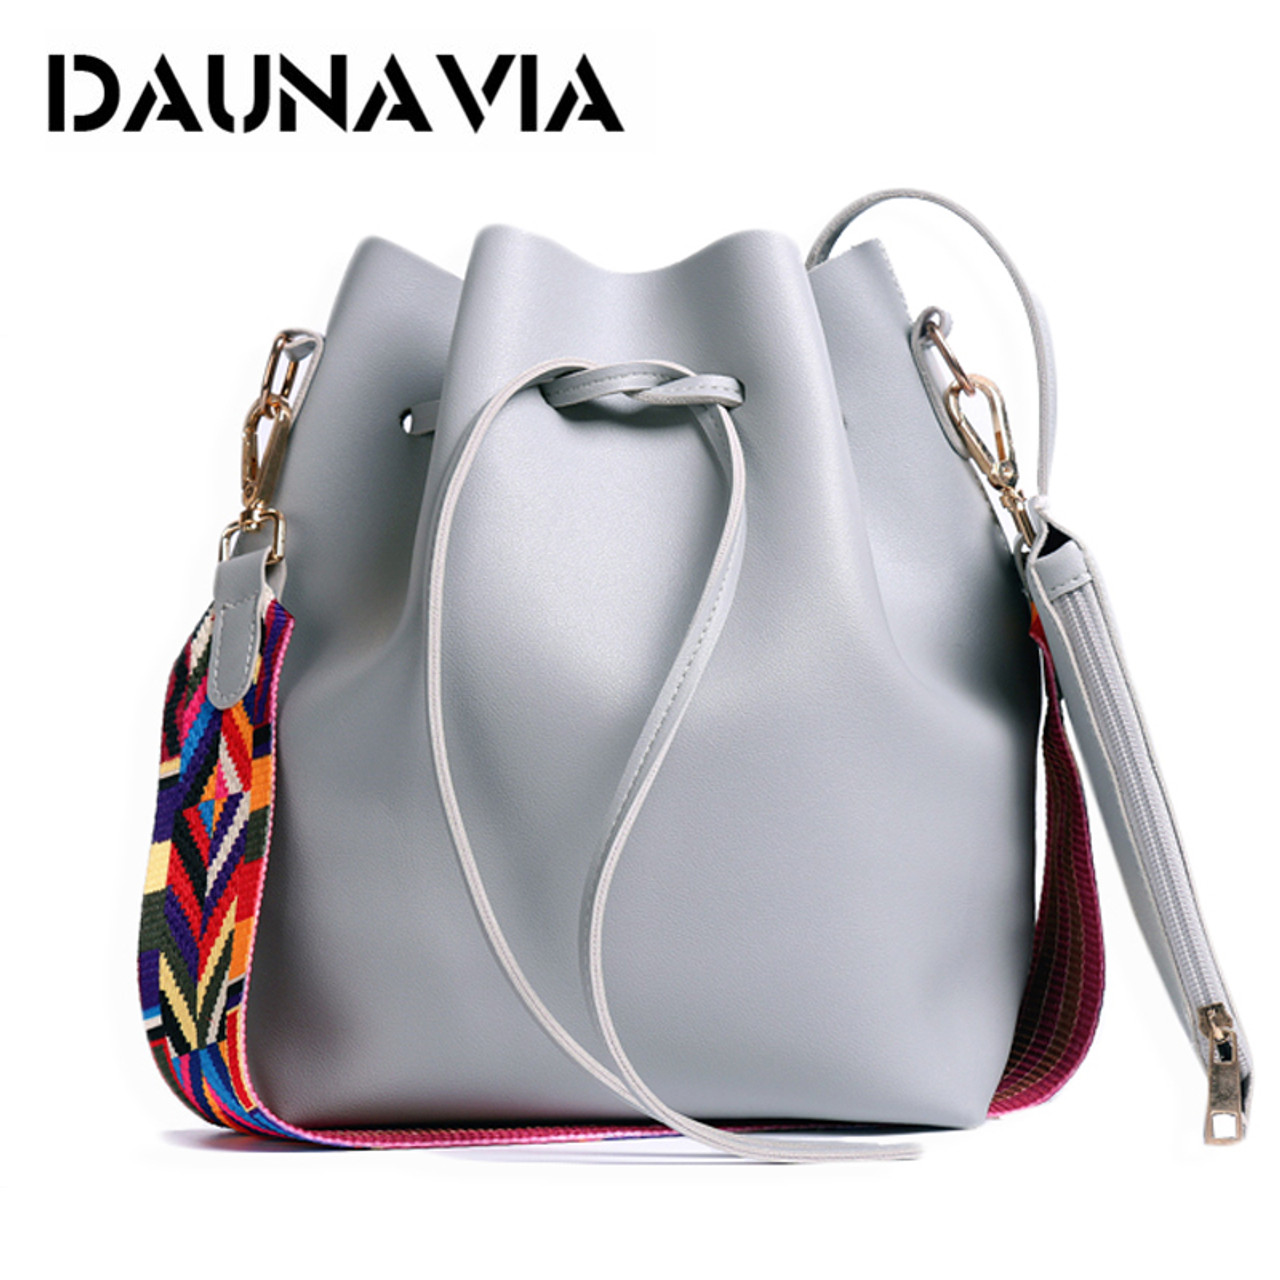 2171ae139f DAUNAVIA Women bag with Colorful Strap Bucket Bag Women PU Leather Shoulder  Bags Brand Designer Ladies ...